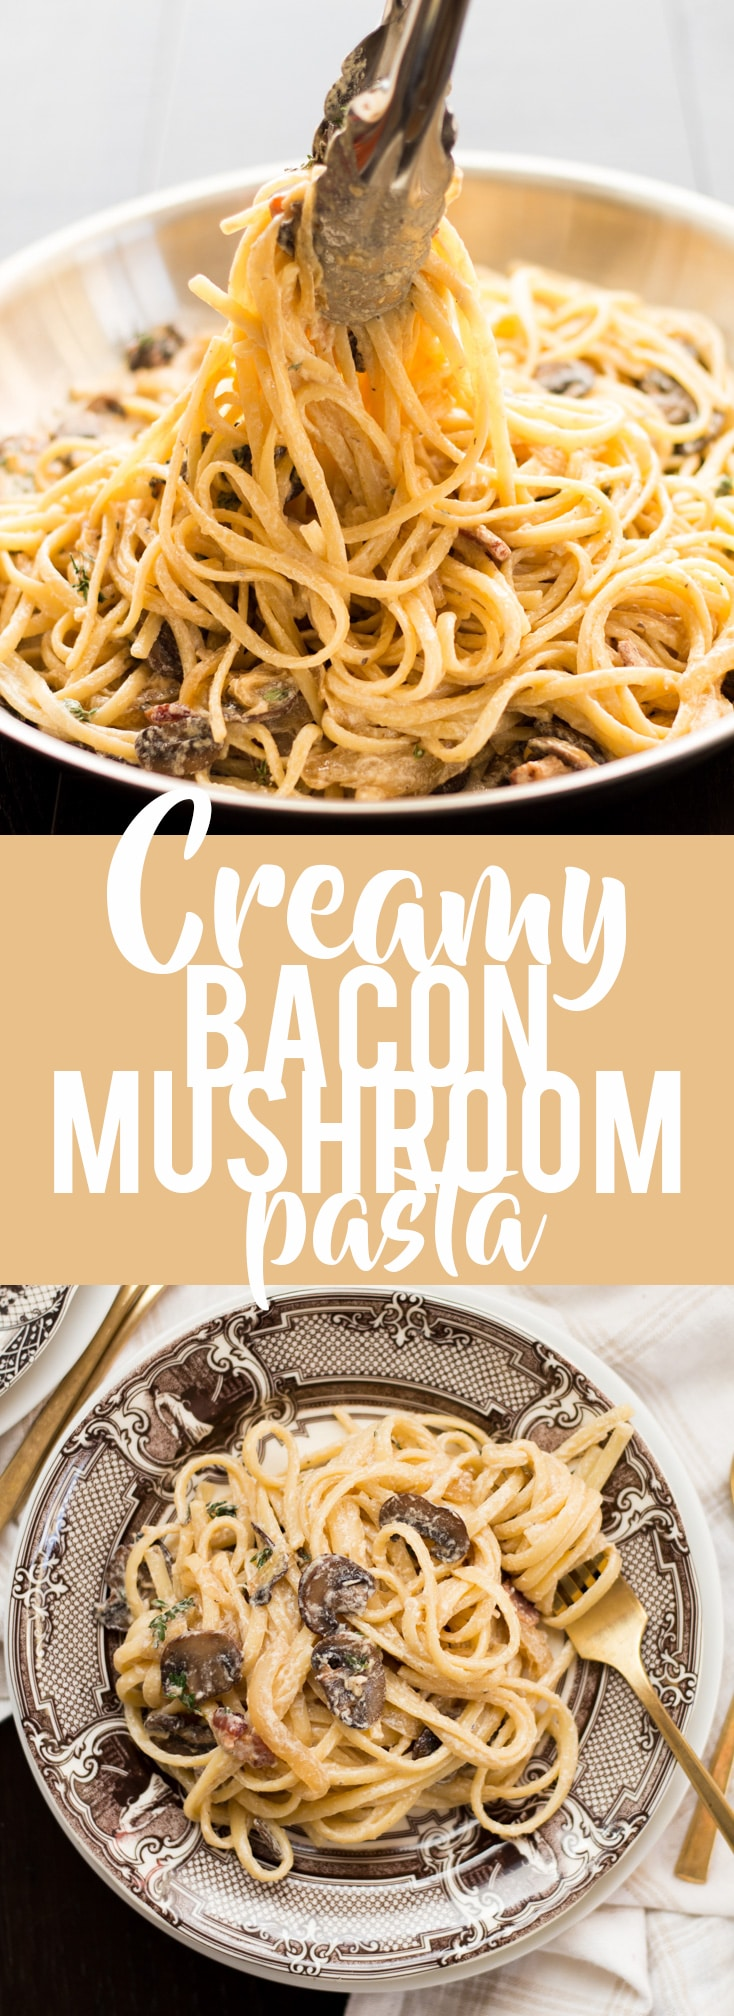 This Creamy Bacon Mushroom Pasta is a perfect date night at home meal, or even just an average weeknight! It is also deceptively fast and easy to make, coming together in under 30 minutes. Savory bacon and mushrooms in a creamy sauce, all tossed together with pasta will have you coming back for seconds!